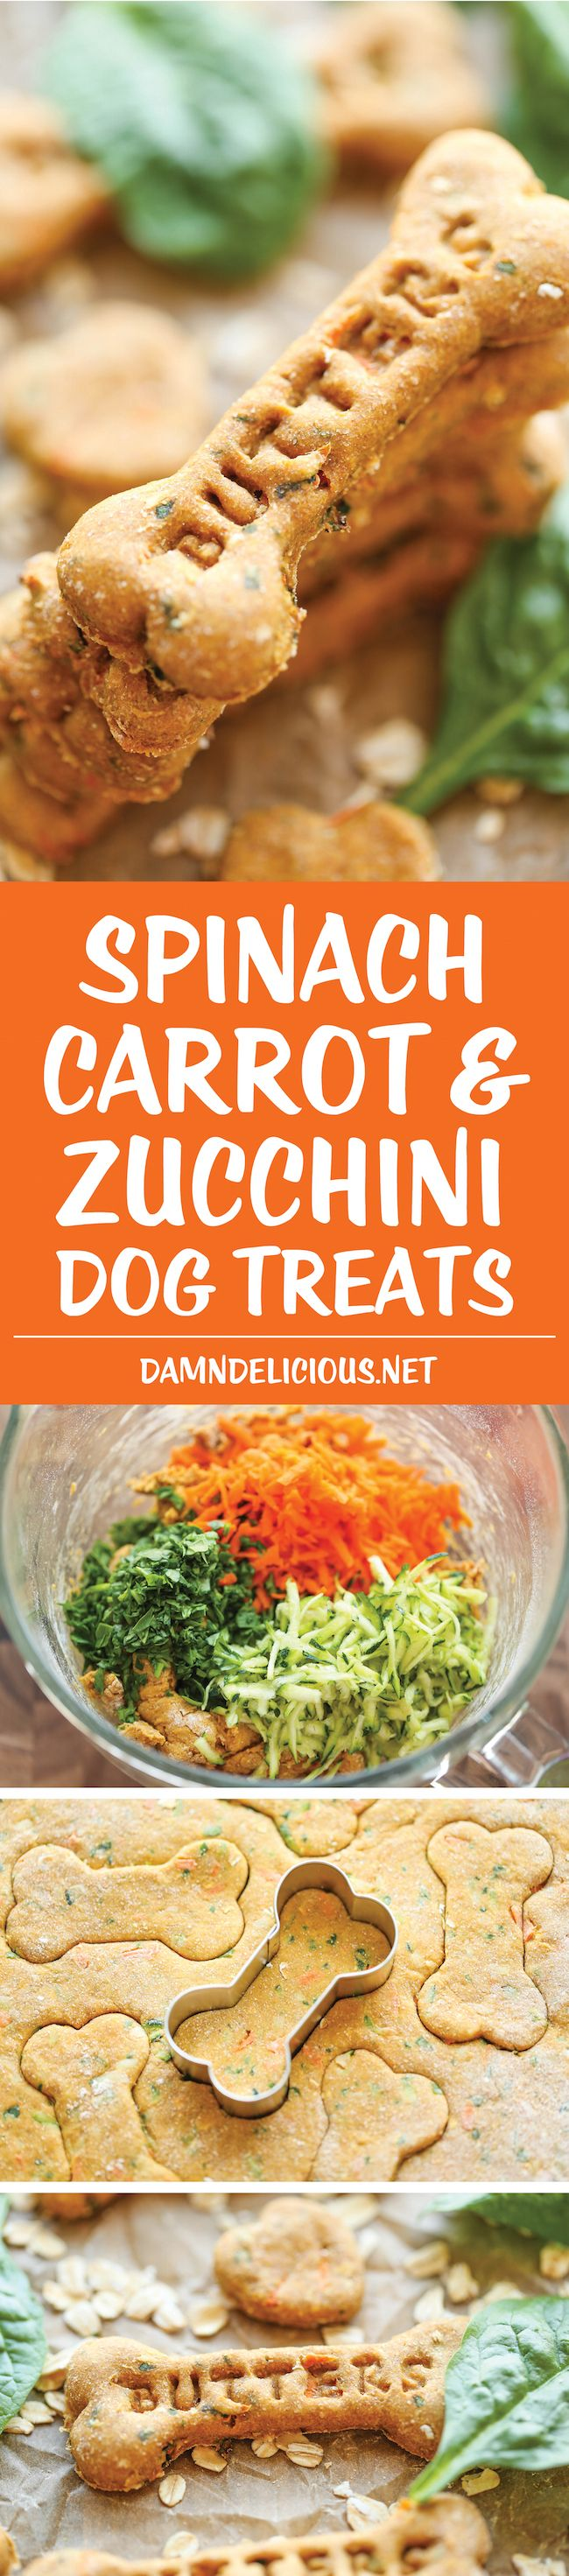 Spinach, Carrot and Zucchini Dog Treats – DIY dog treats that are nutritious, healthy and so easy to make. Plus, your pup will